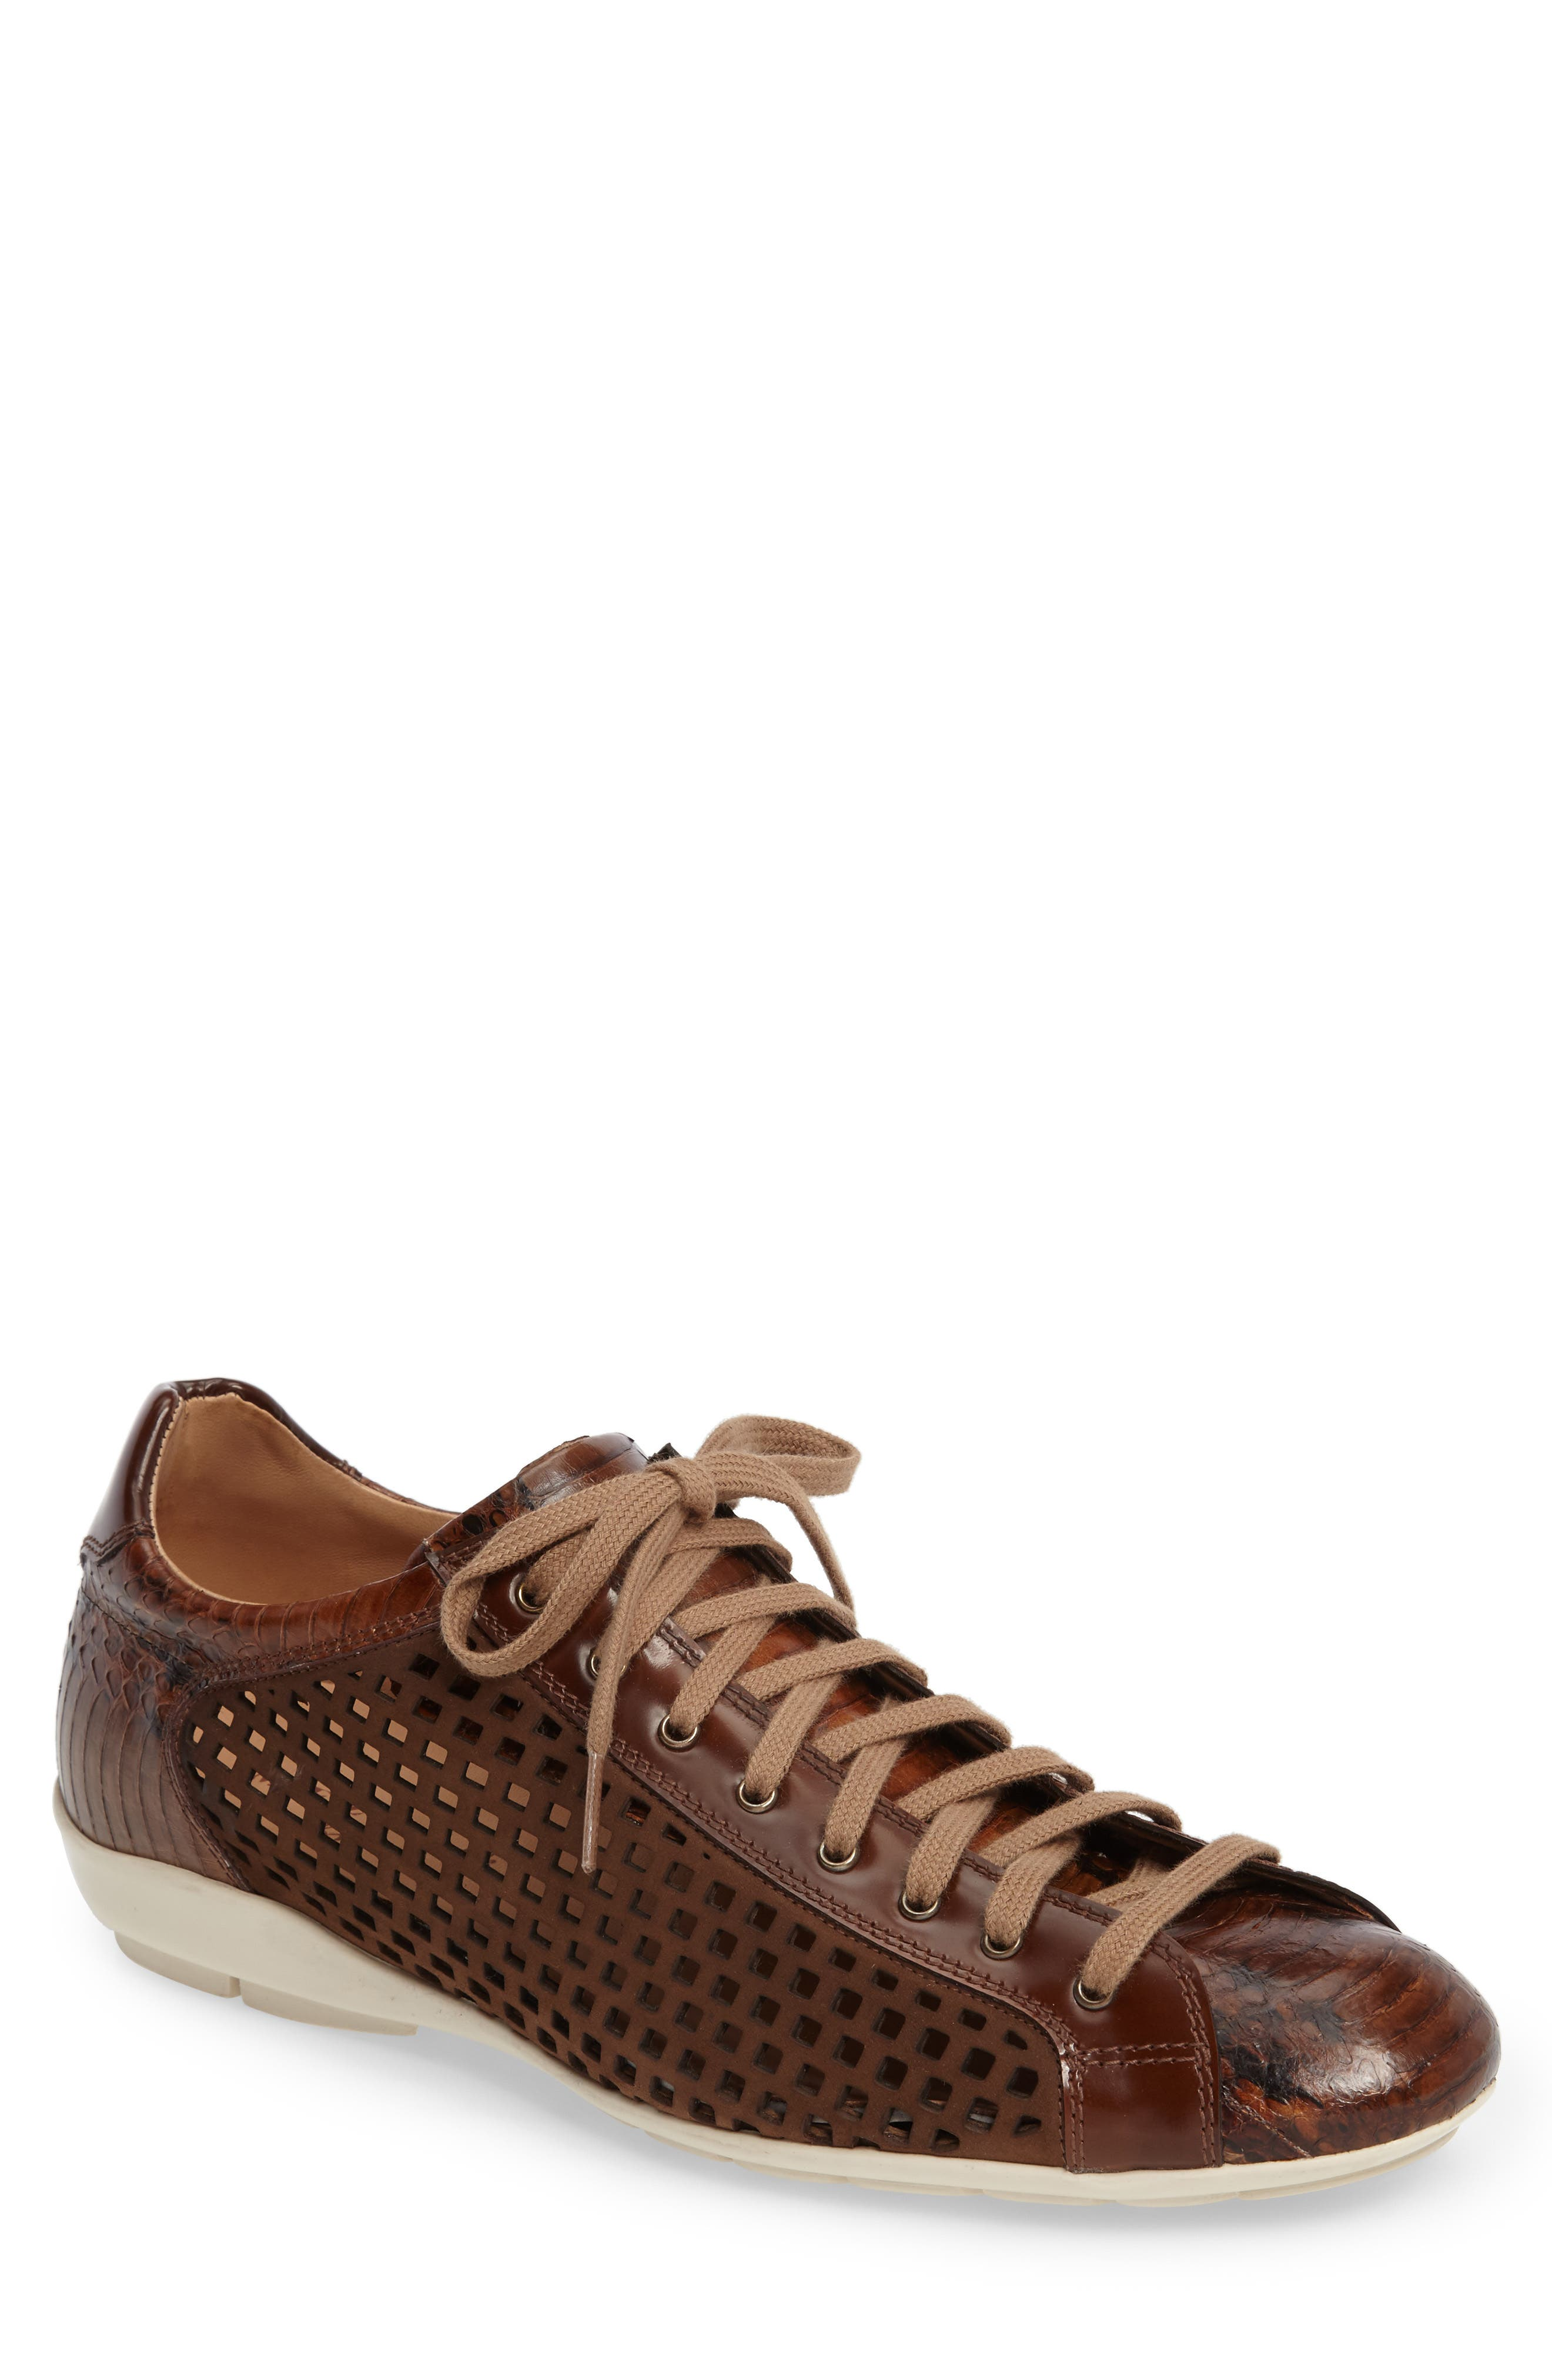 Alternate Image 1 Selected - Mezlan Scharf Sneaker (Men)